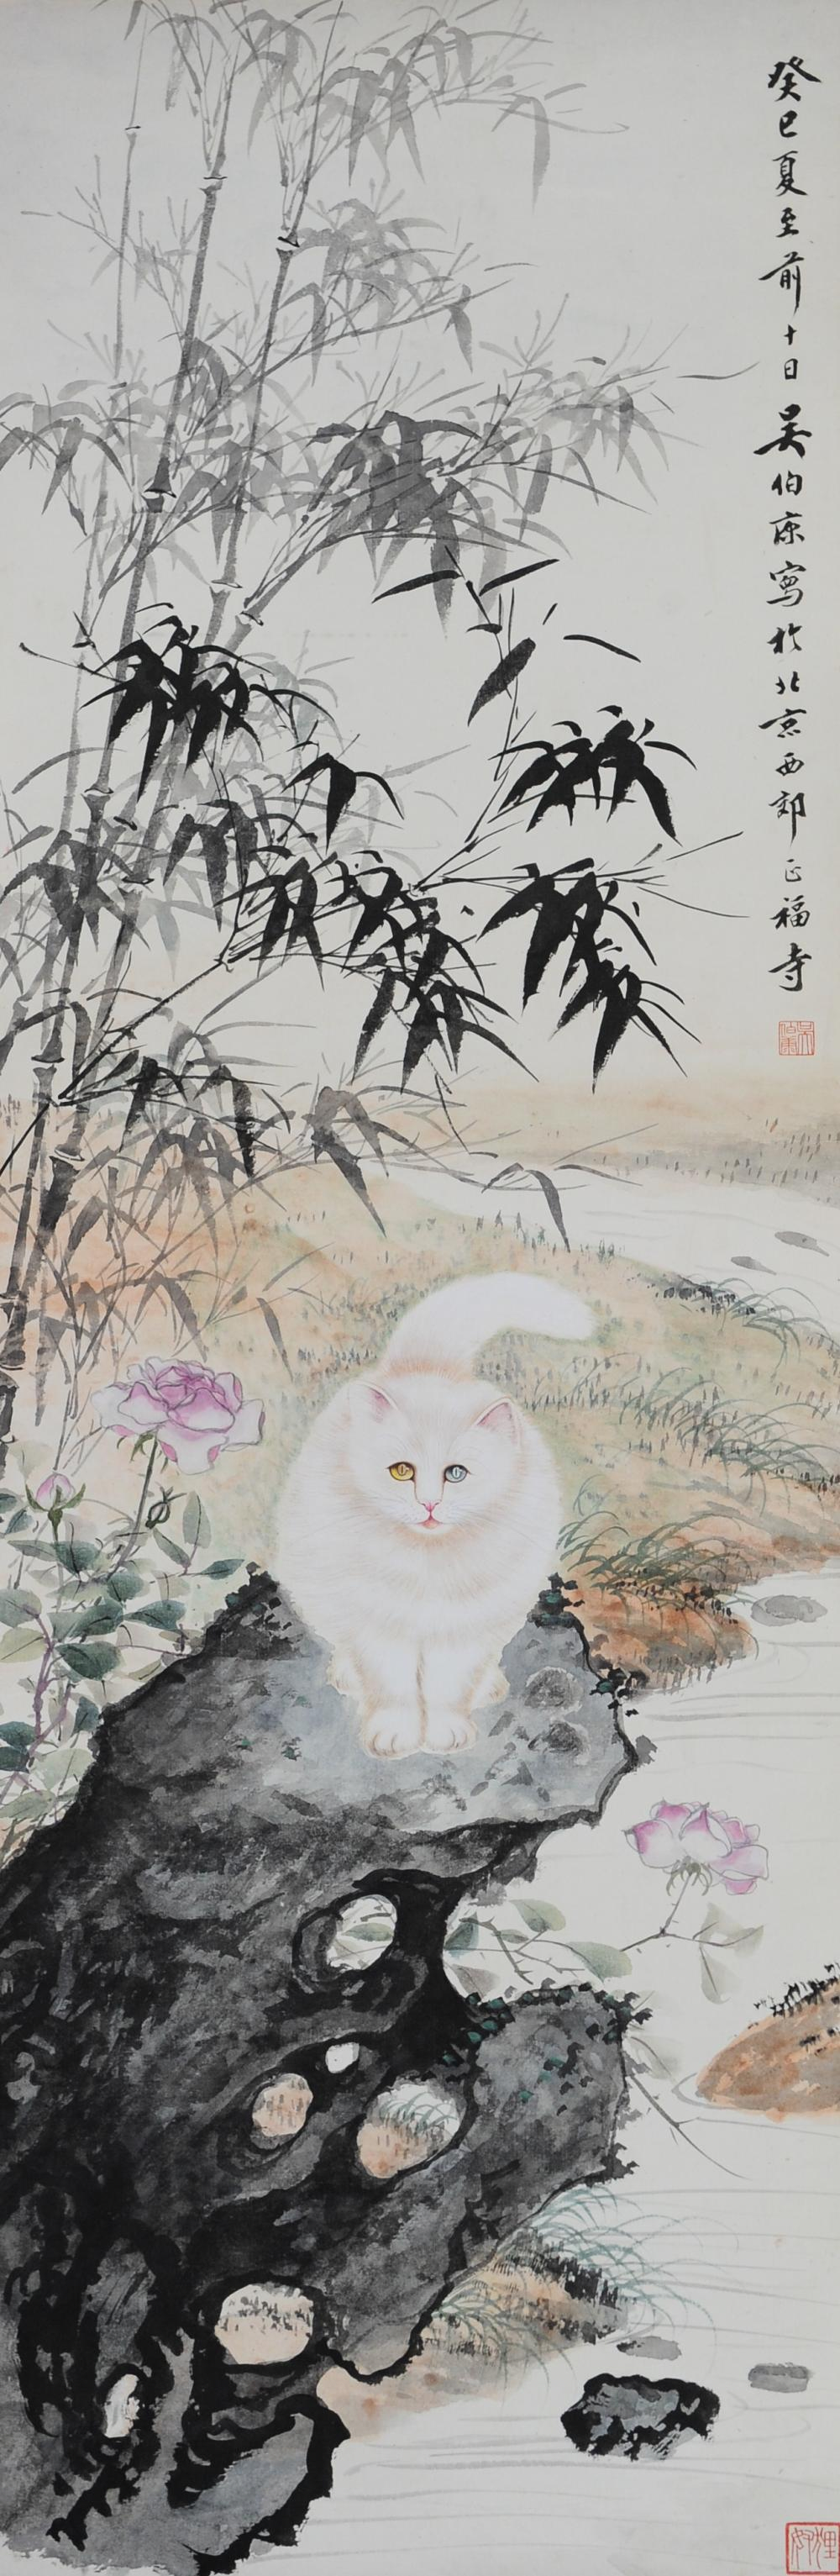 PAINTING OF A CAT & BAMBOO BY WU BOKANG